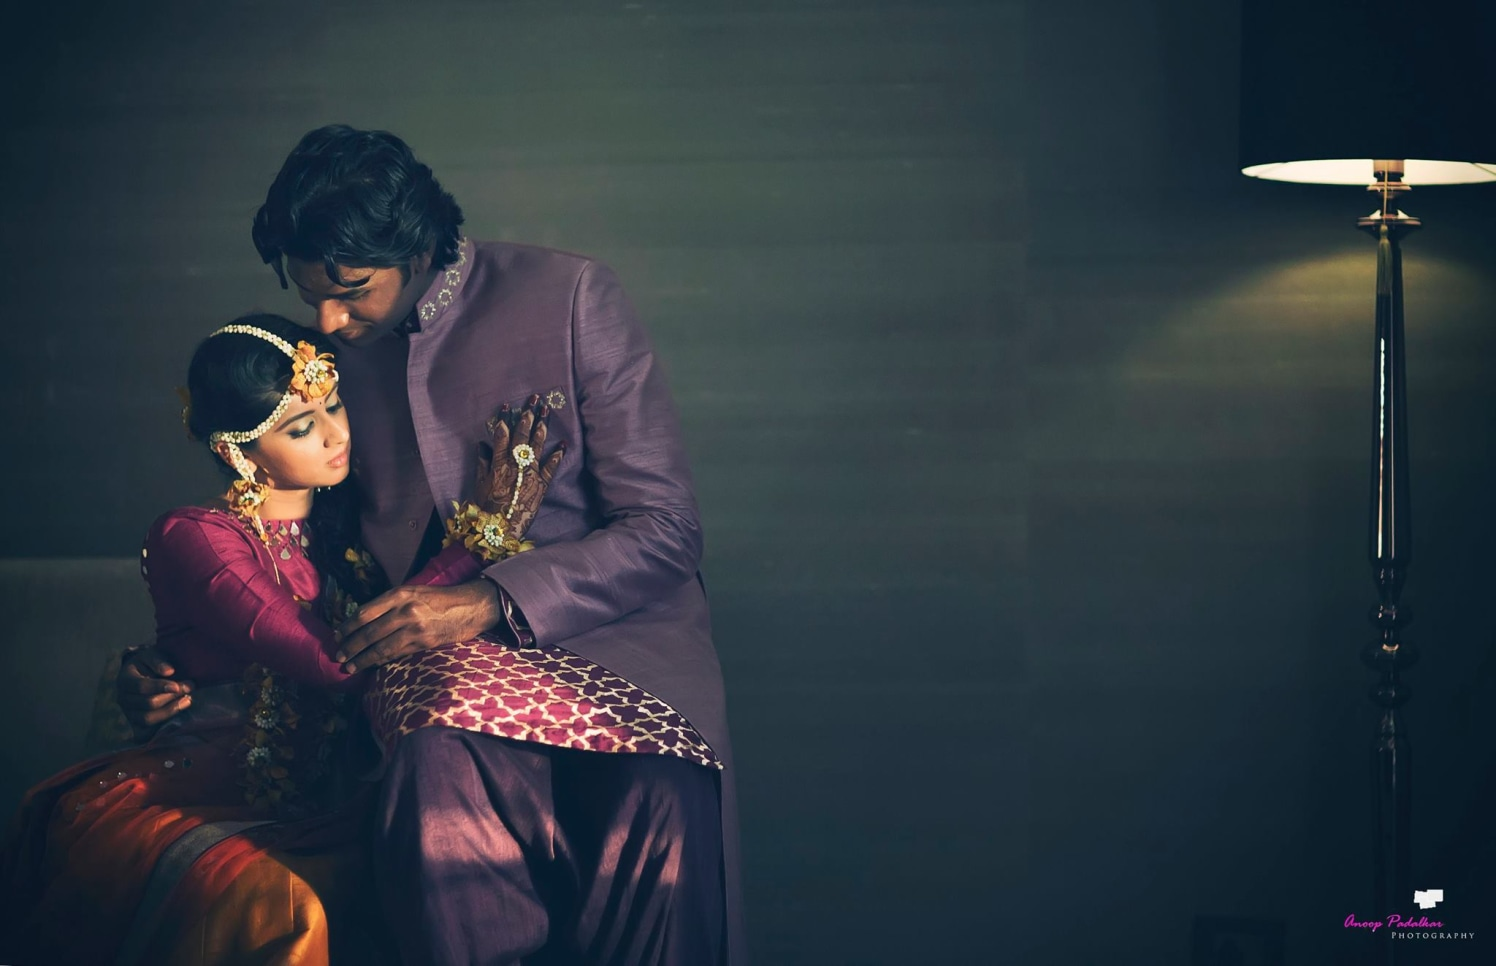 Royalty at its peak by Wedding Krafter Wedding-photography | Weddings Photos & Ideas